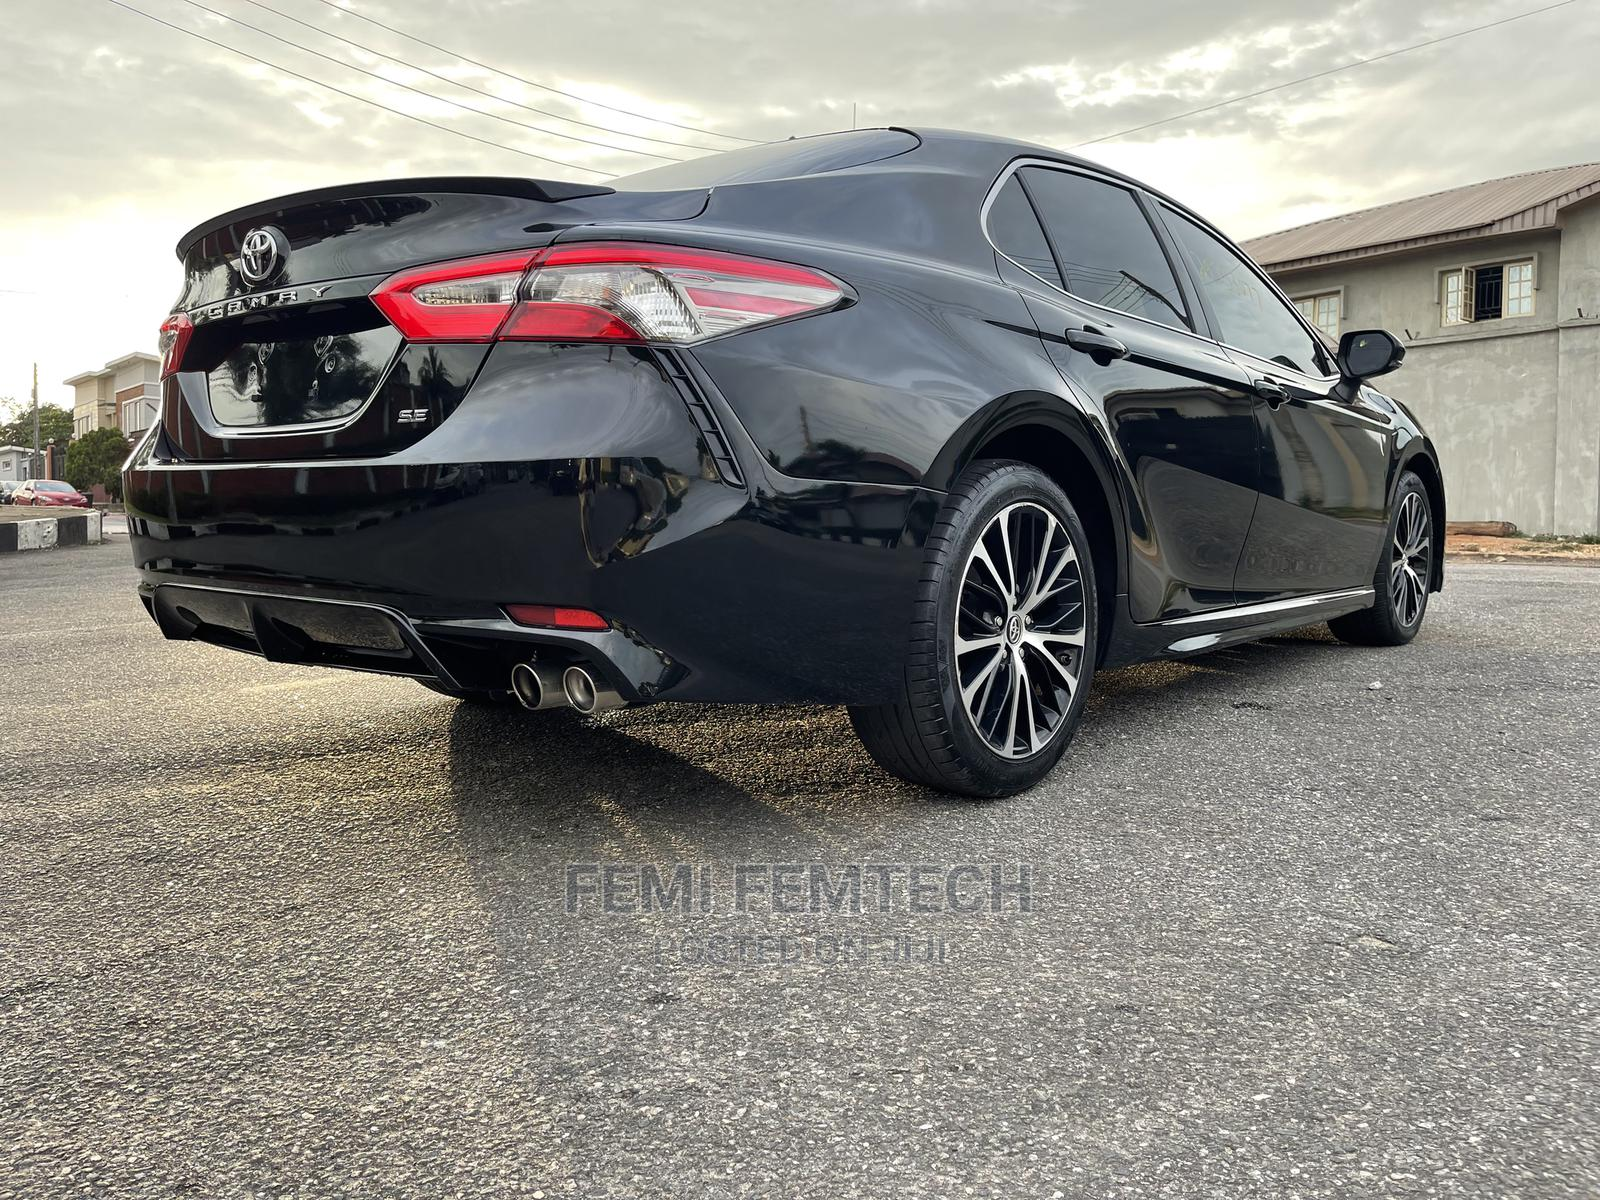 Toyota Camry 2018 SE FWD (2.5L 4cyl 8AM) Black   Cars for sale in Ikeja, Lagos State, Nigeria